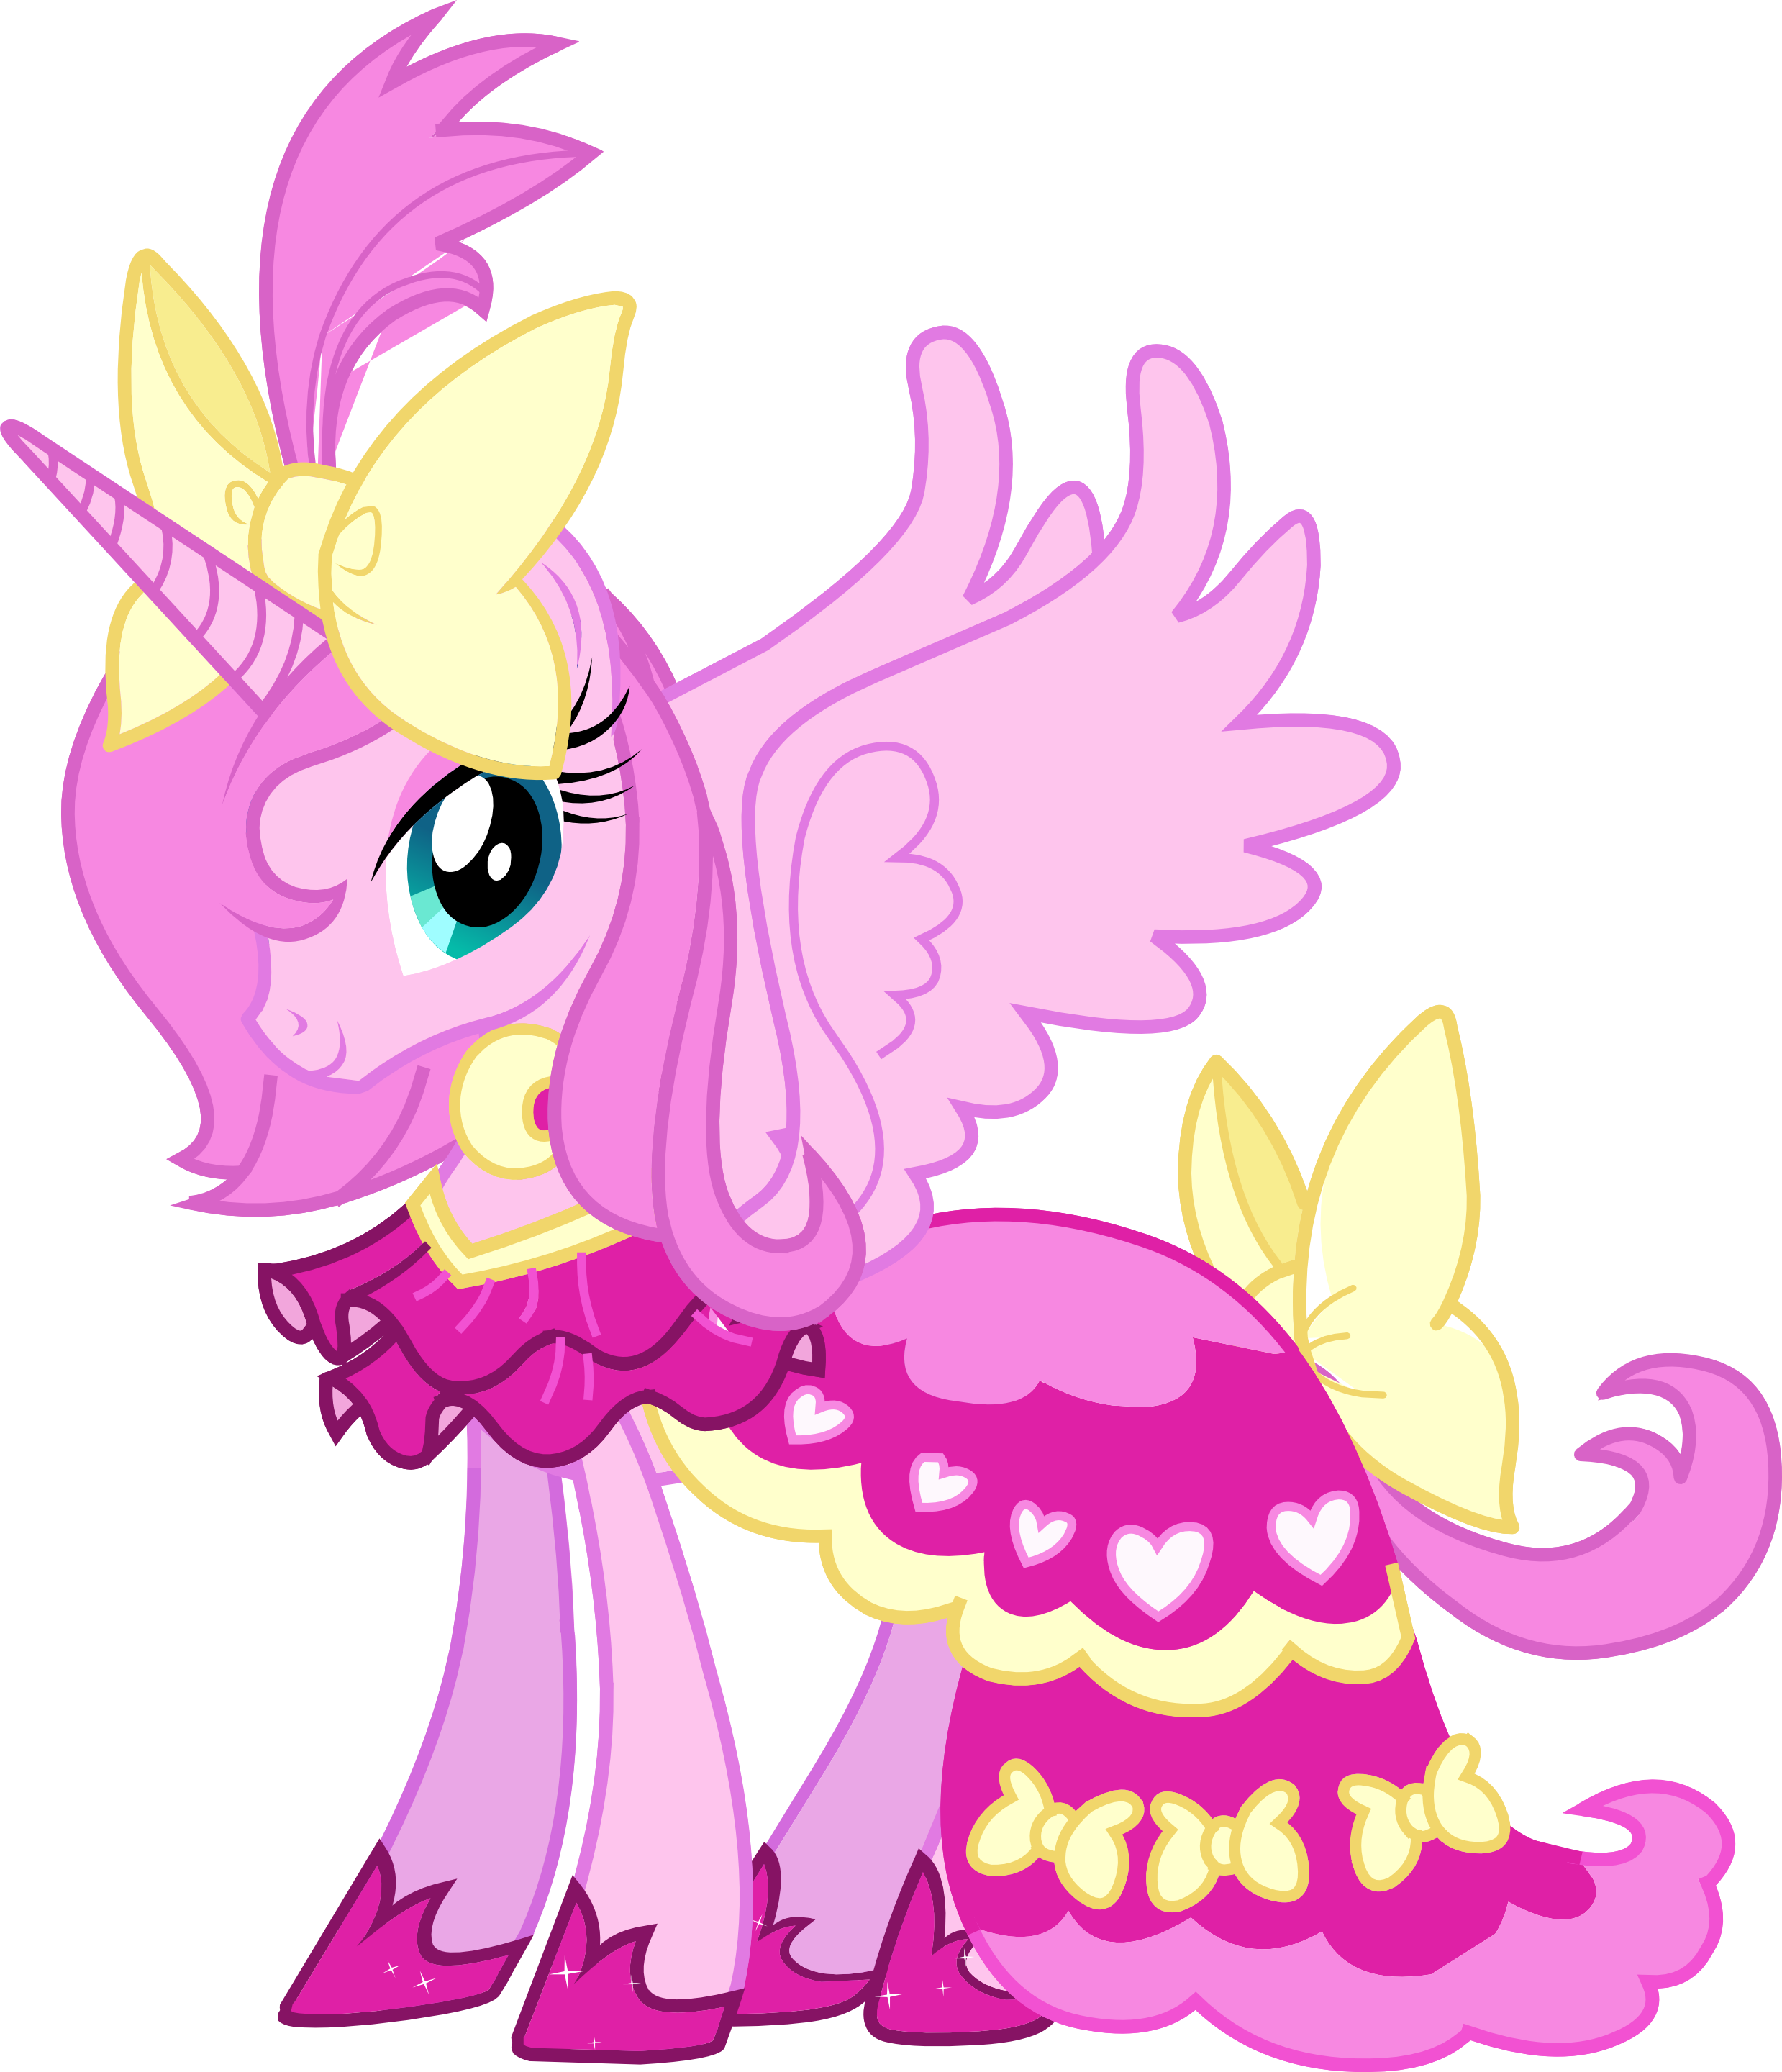 Princess Luna - My Little Pony Friendship is Magic Wiki